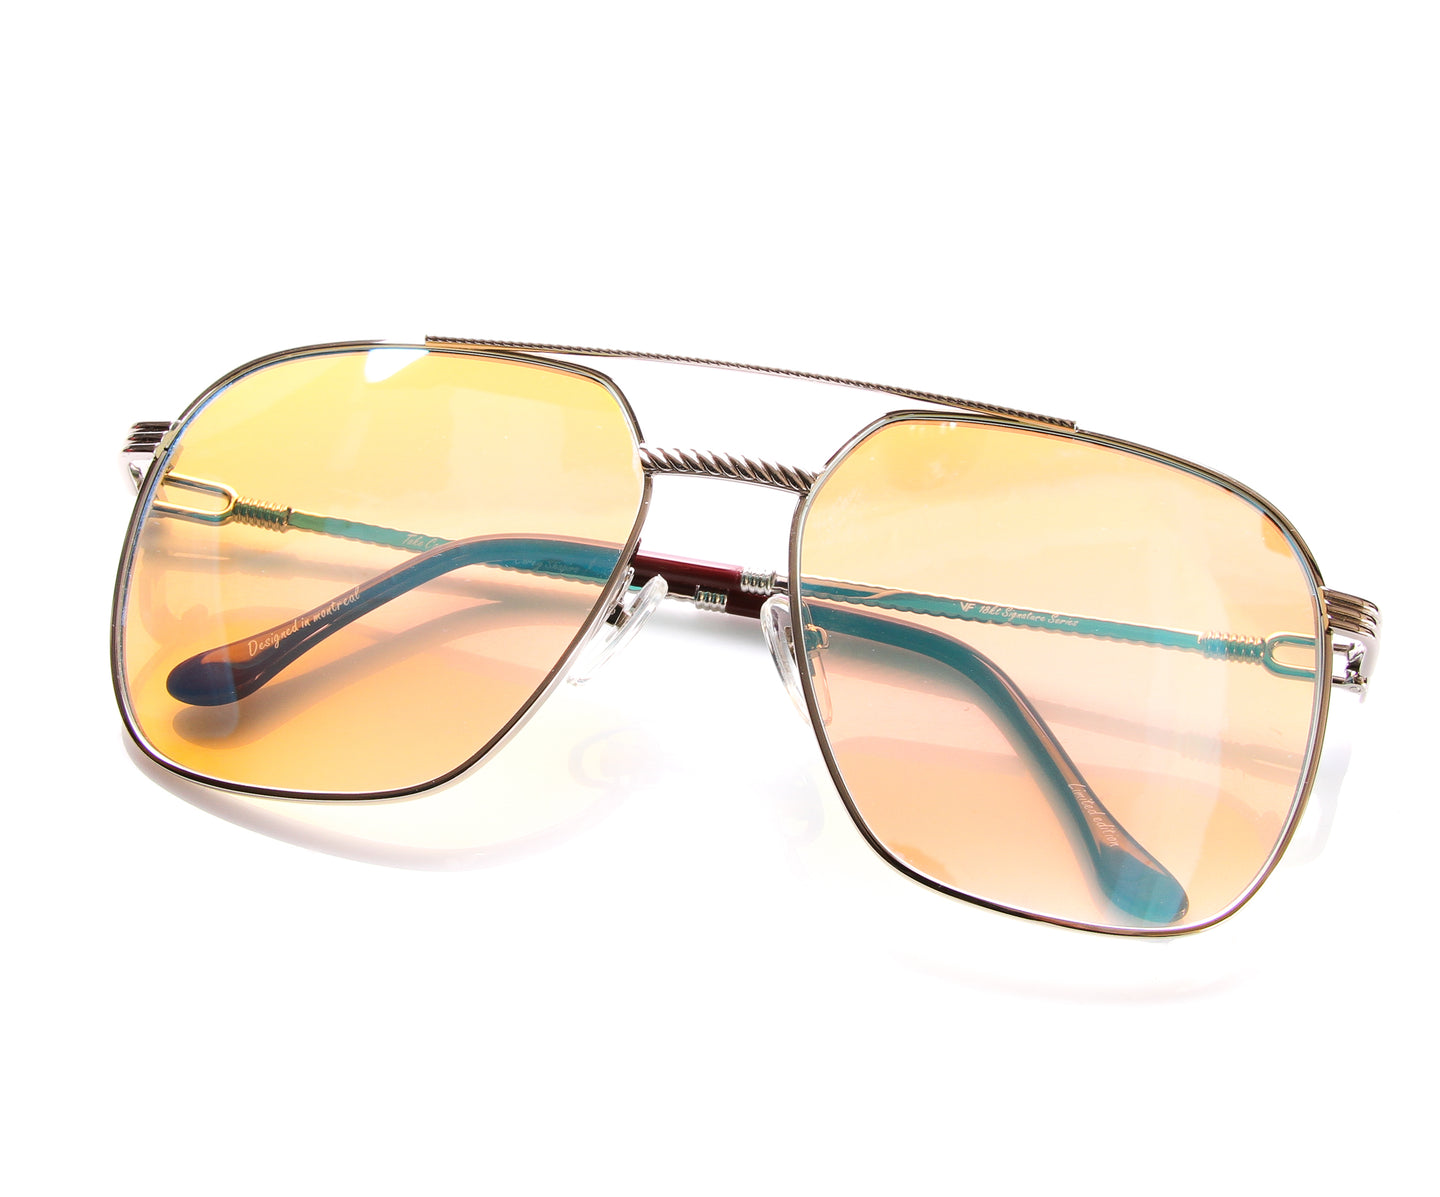 Narcos Masterpiece 18KT White Gold Signature Edition (Candy Green), VF Masterpiece , glasses frames, eyeglasses online, eyeglass frames, mens glasses, womens glasses, buy glasses online, designer eyeglasses, vintage sunglasses, retro sunglasses, vintage glasses, sunglass, eyeglass, glasses, lens, vintage frames company, vf